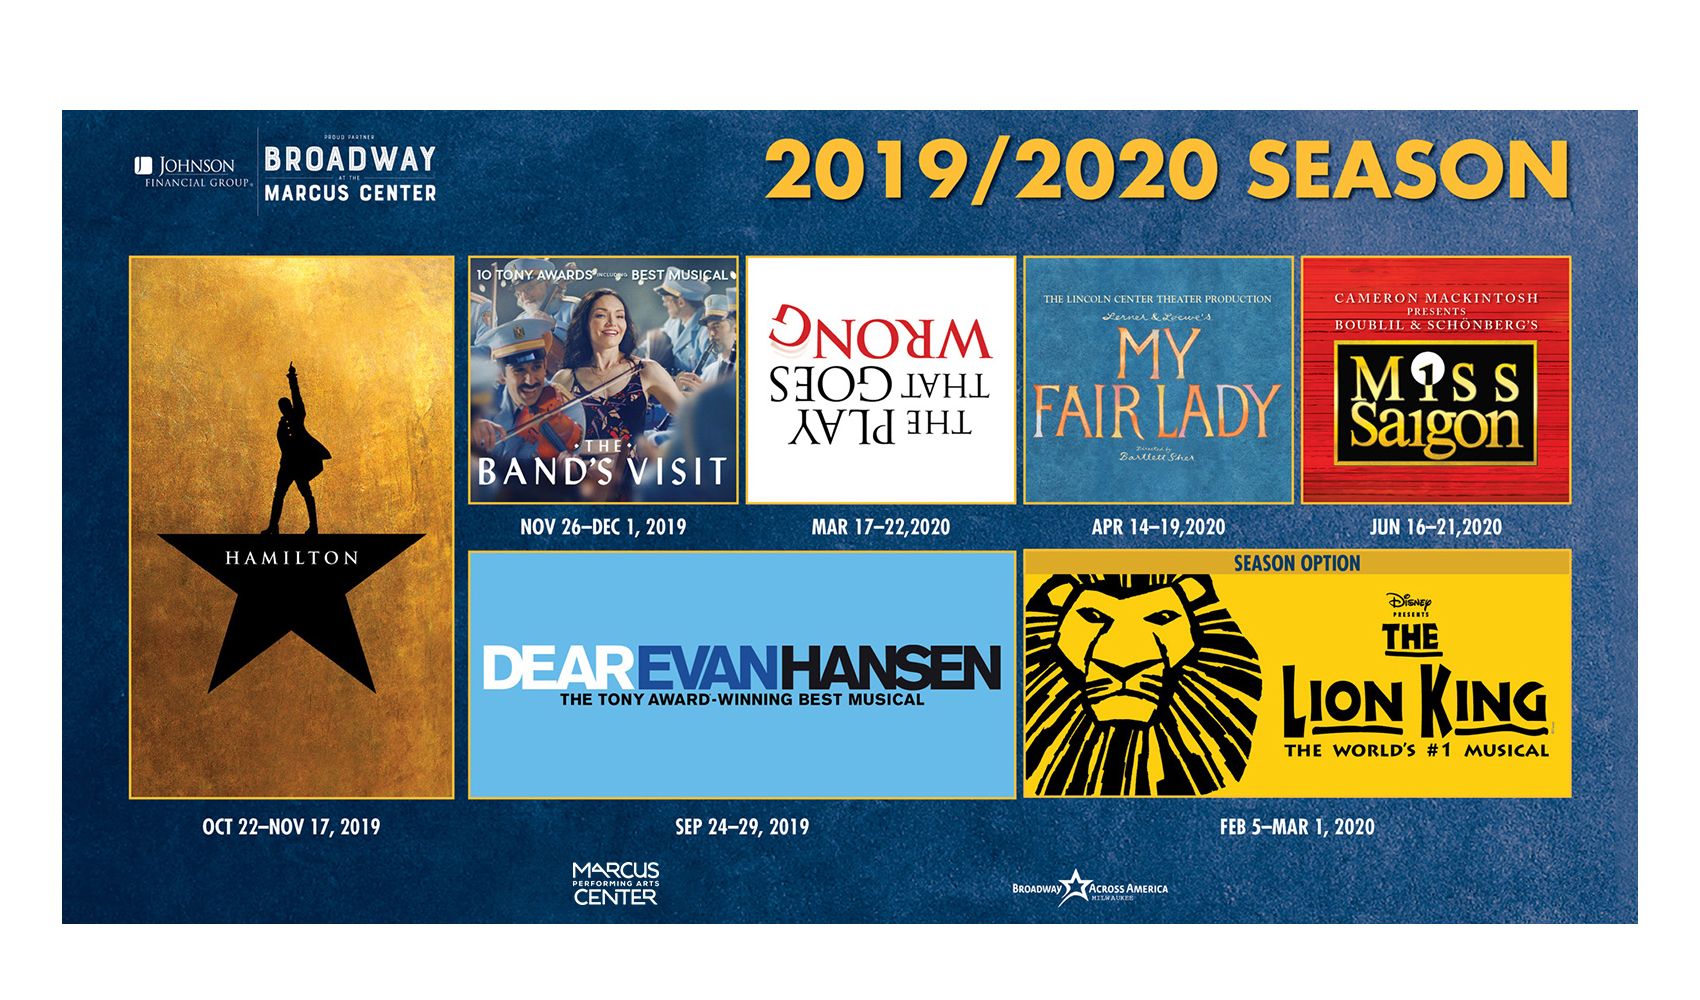 Marcus Center Broadway Season 2019-2020